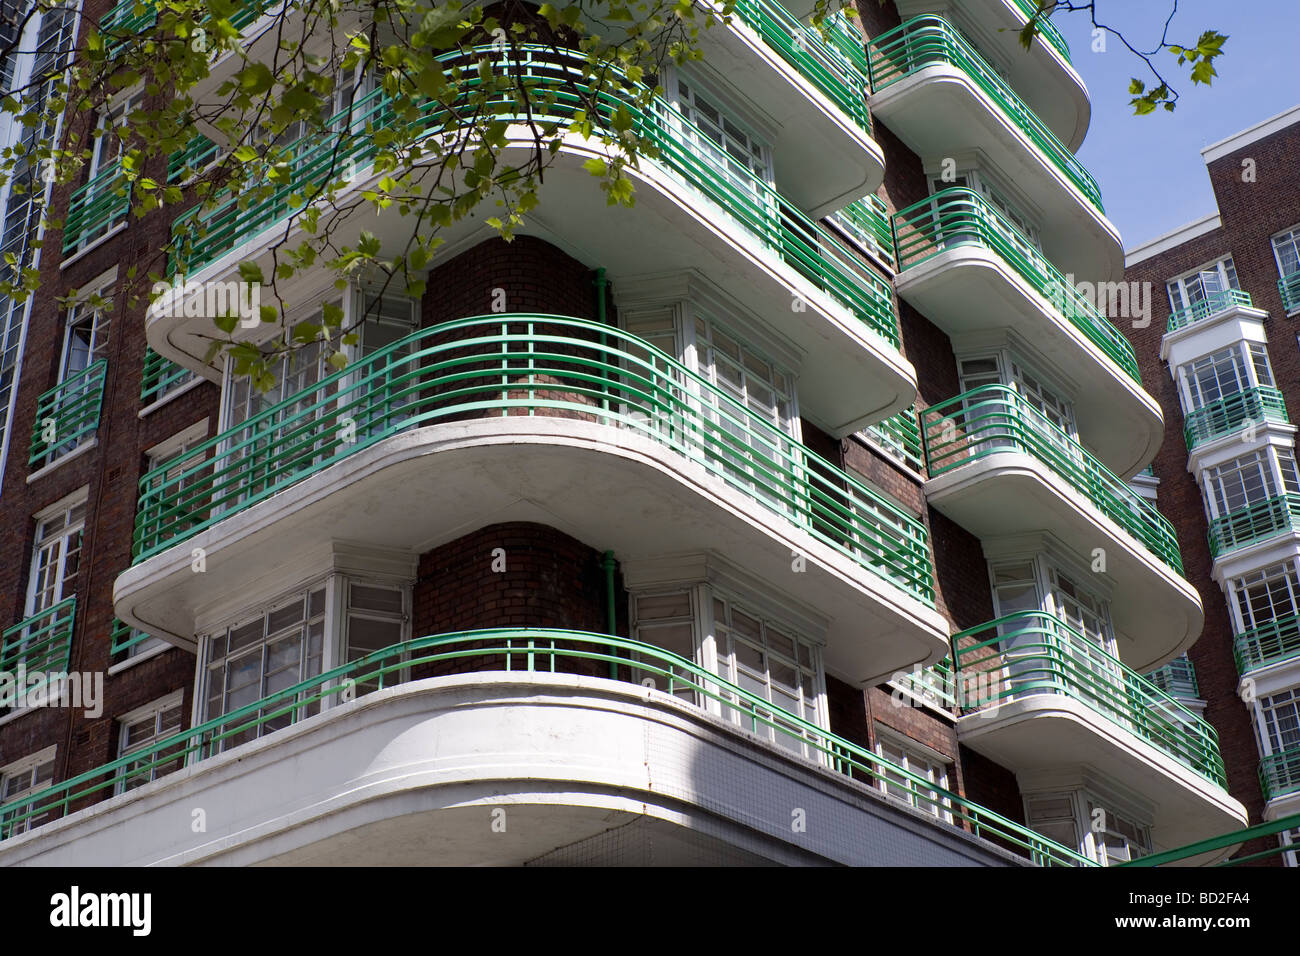 art deco apartment block london england uk europe stock photo 25256844 alamy. Black Bedroom Furniture Sets. Home Design Ideas